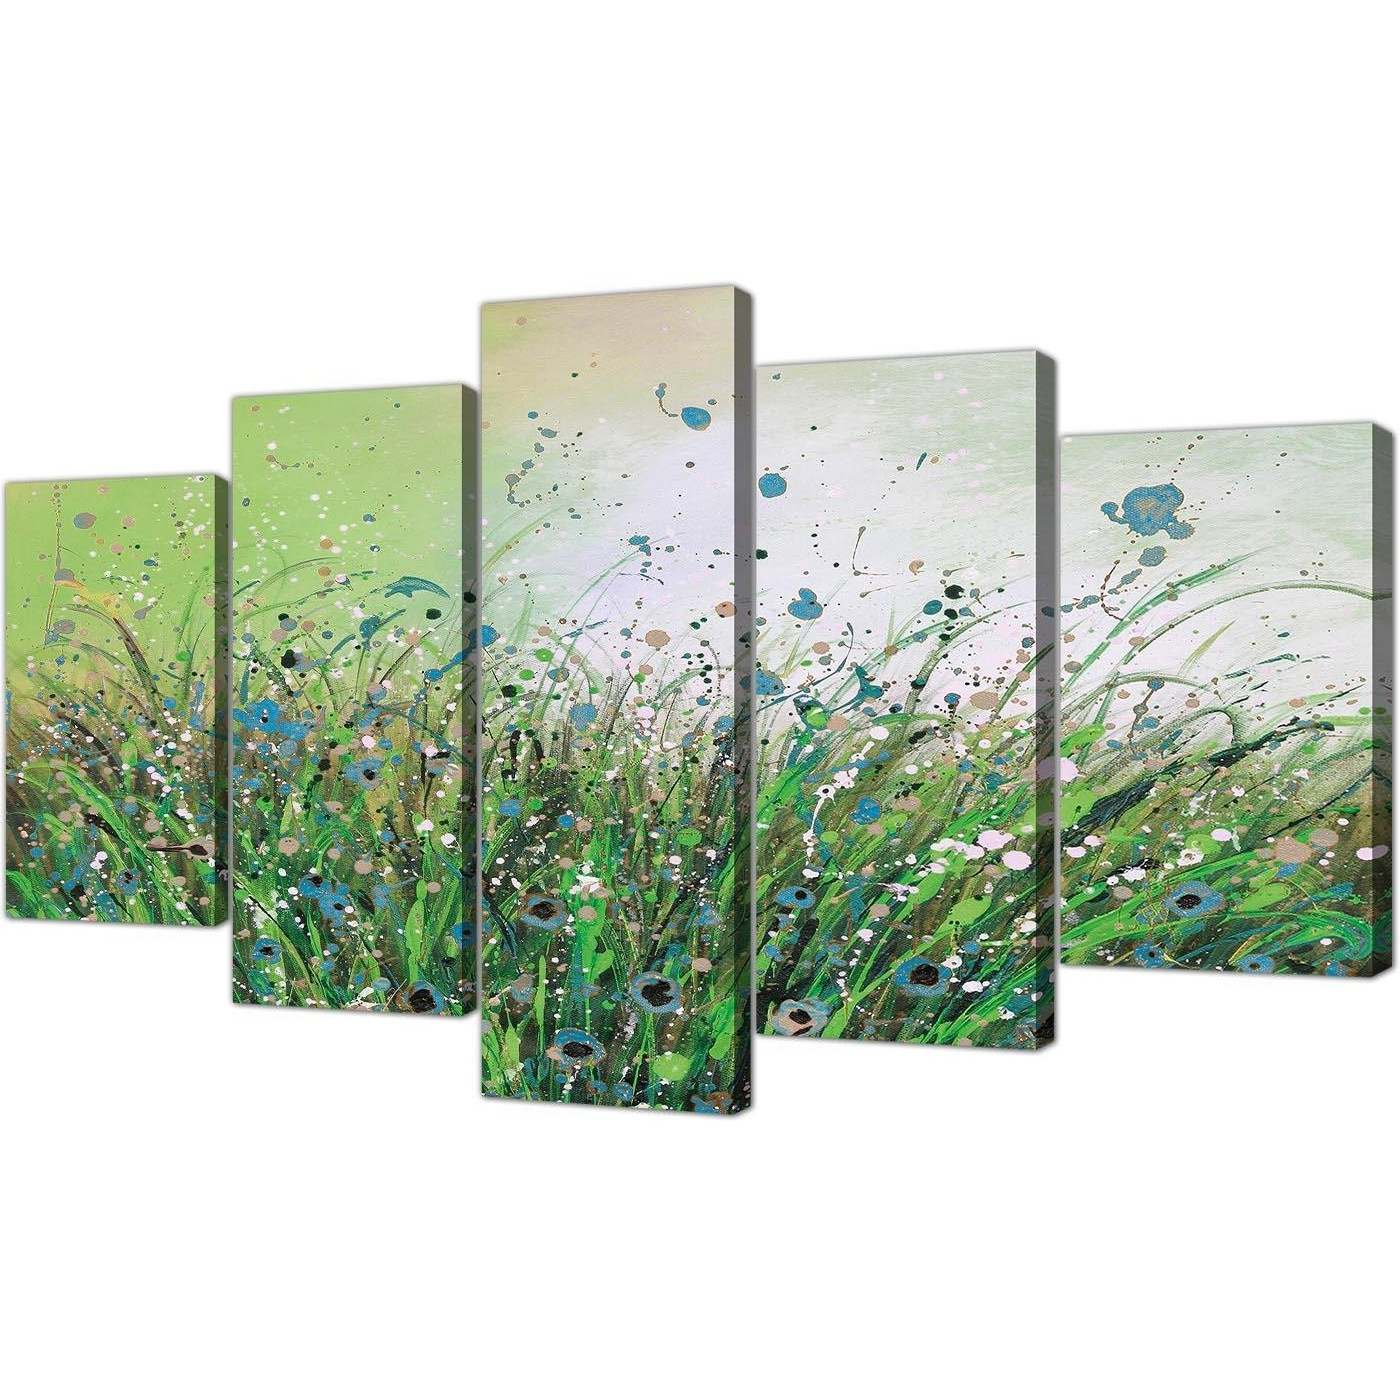 Popular Extra Large Floral Abstract Canvas Wall Art In Green With Large Canvas Wall Art (View 12 of 15)